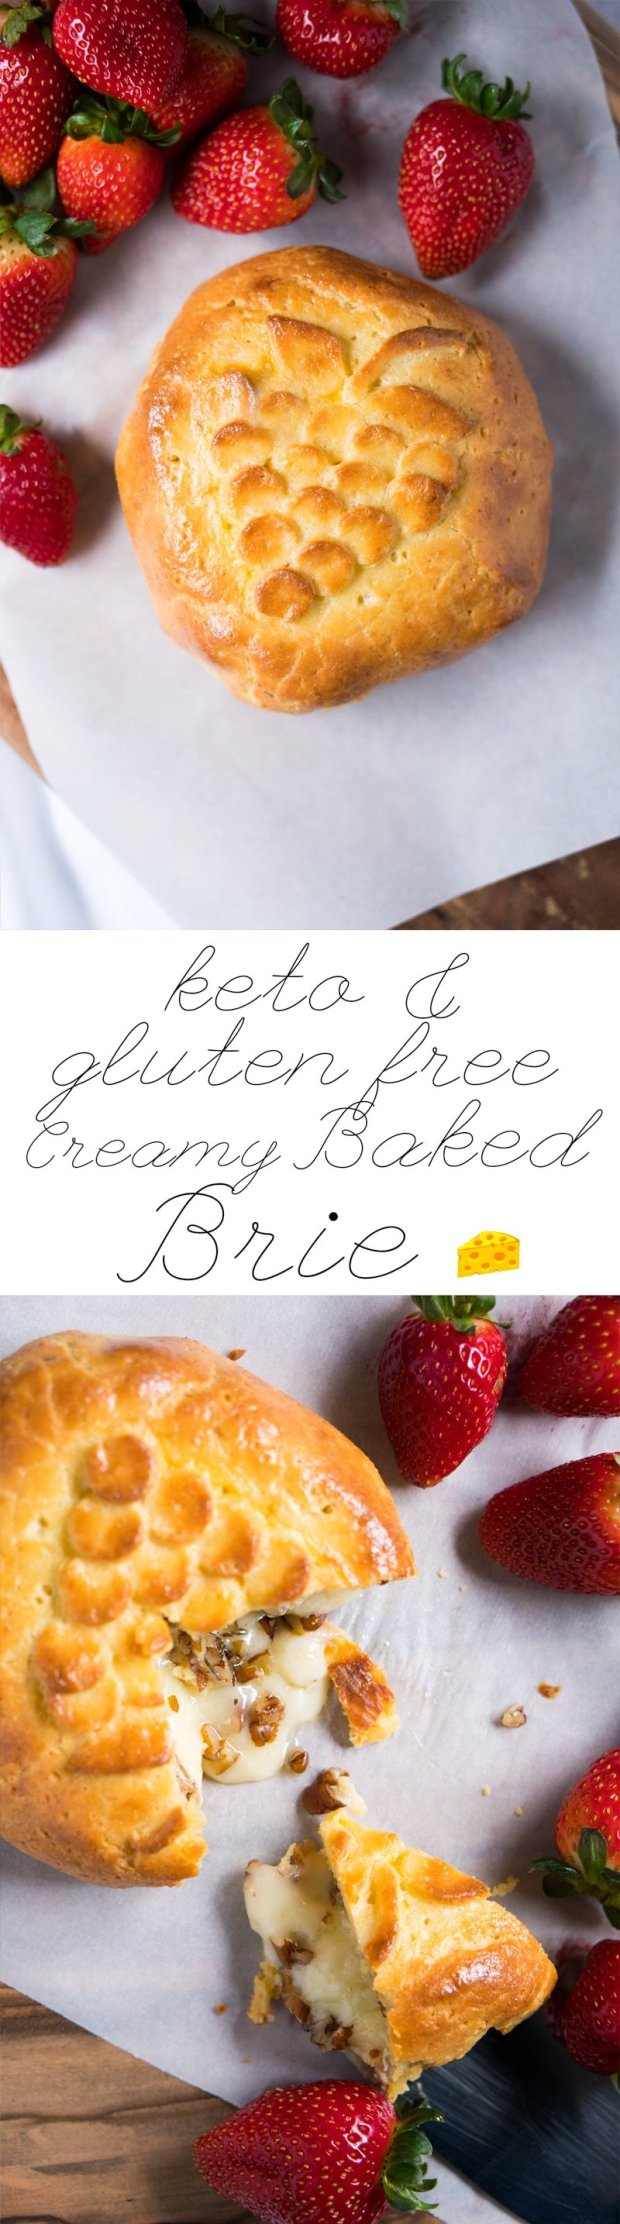 Gluten Free & Keto Baked Brie 🧀 ridiculously creamy!